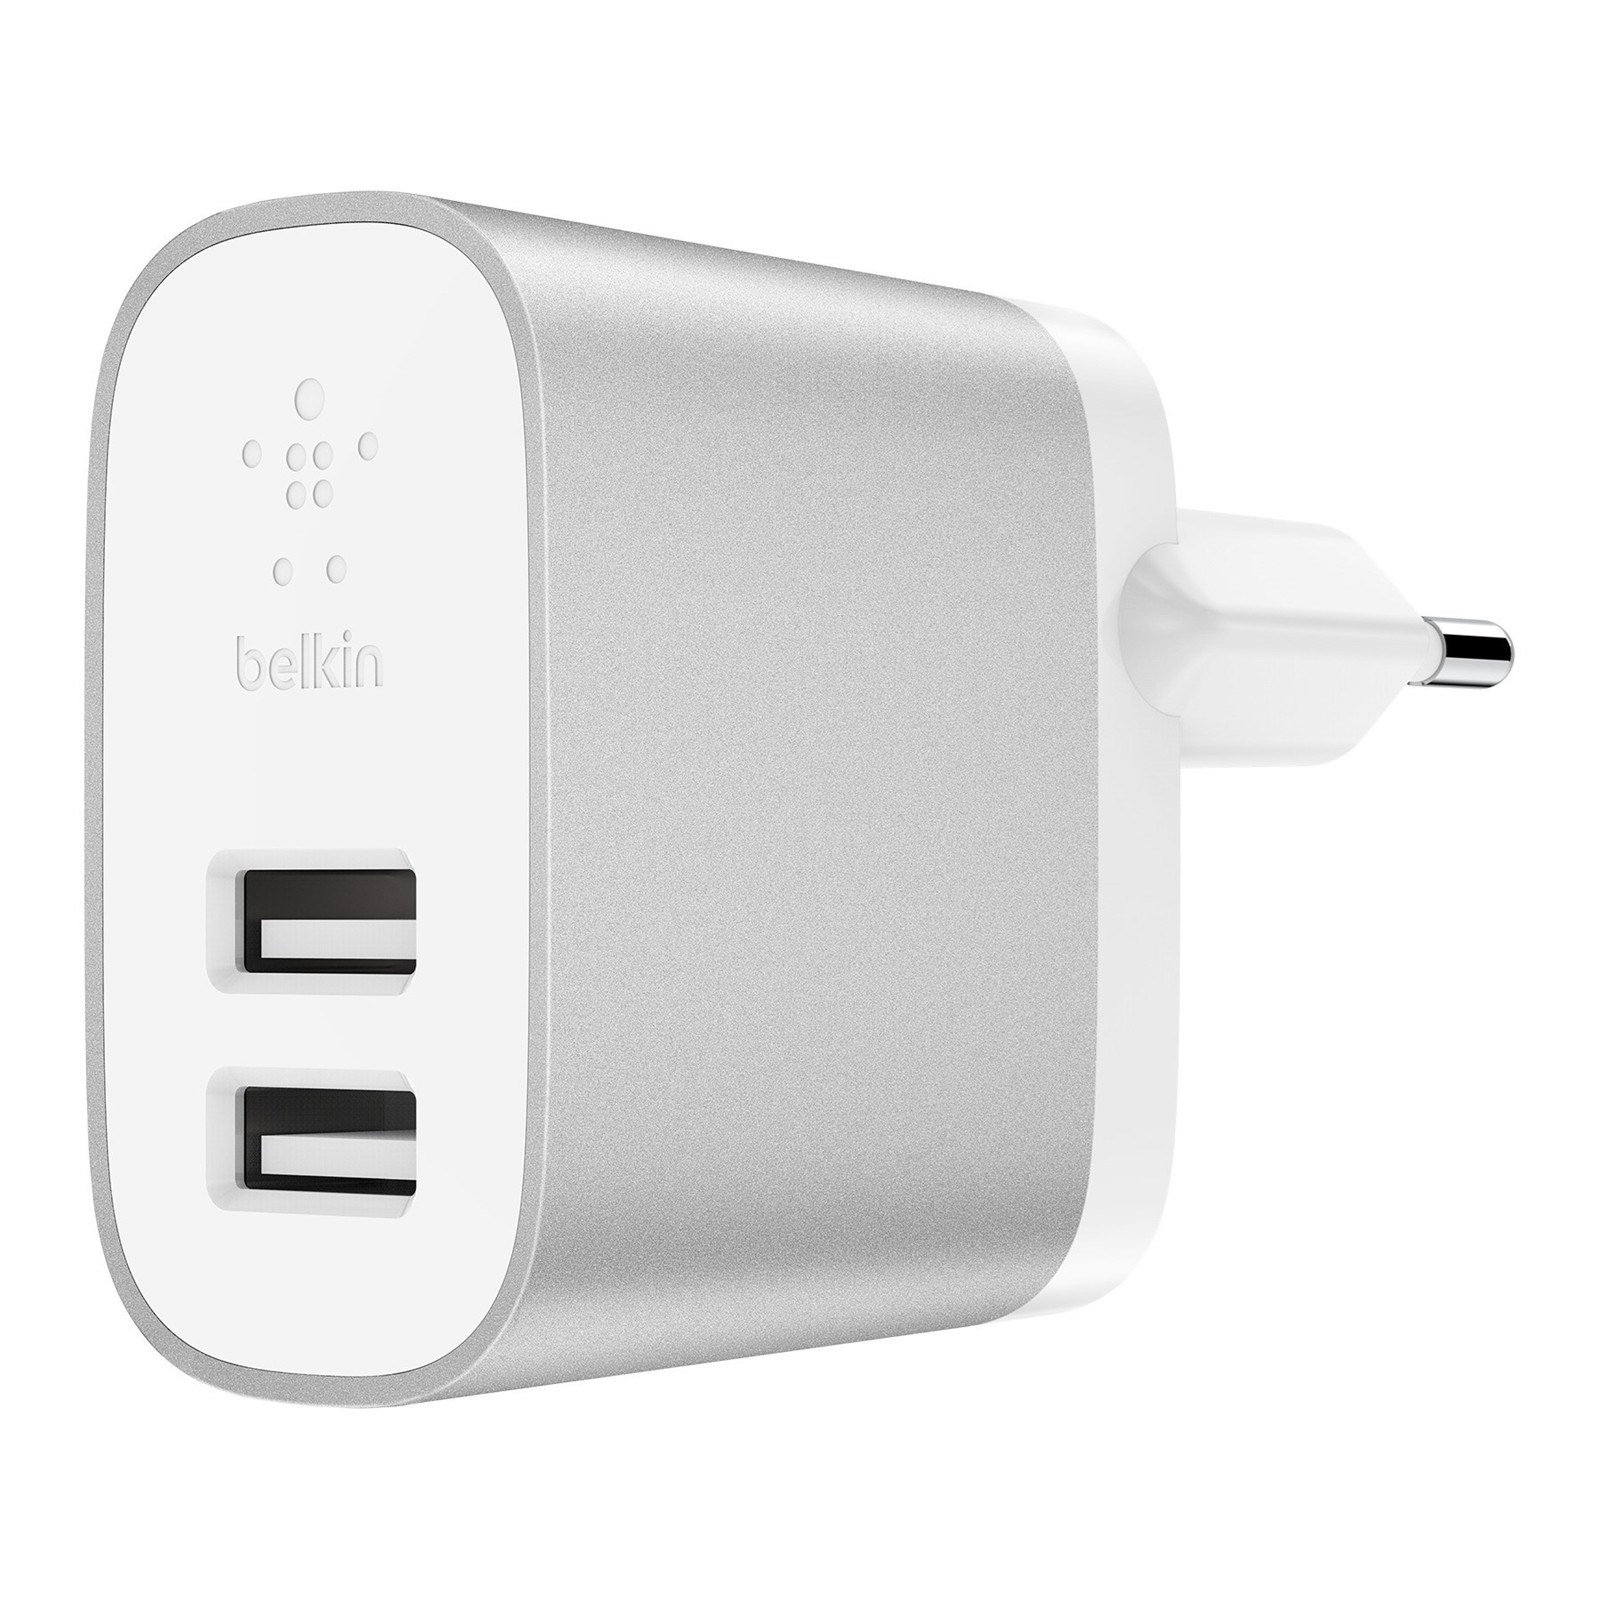 Belkin 4.8A Dual USB-A Home Charger, Silver